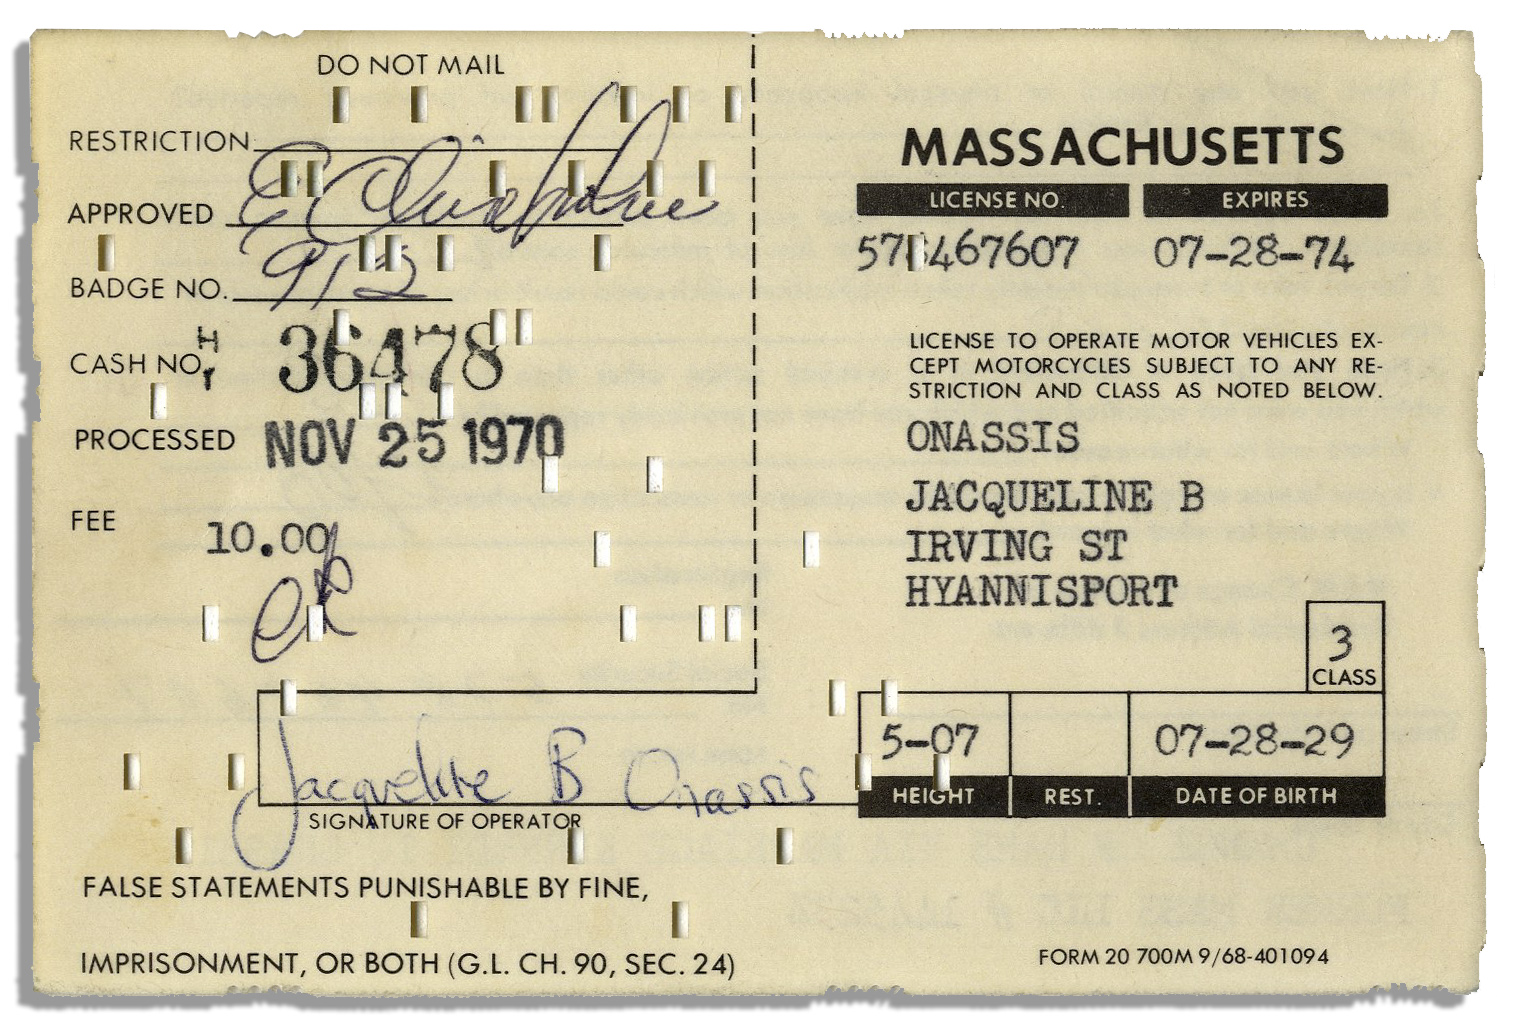 lot detail driver license application signed filled out by driver license application signed filled out by jackie kennedy onassis when she remarried took